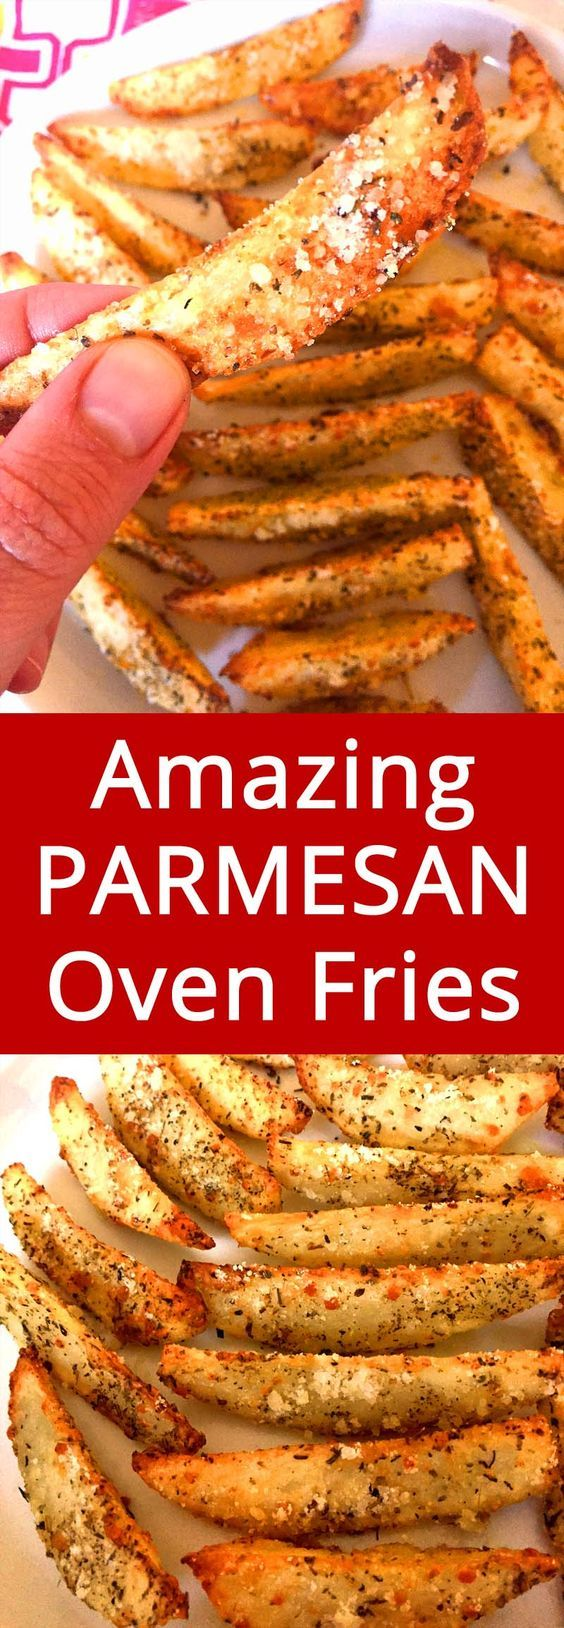 Amazing Garlic Parmesan fries taste even better with some 505 Chile Sauce!